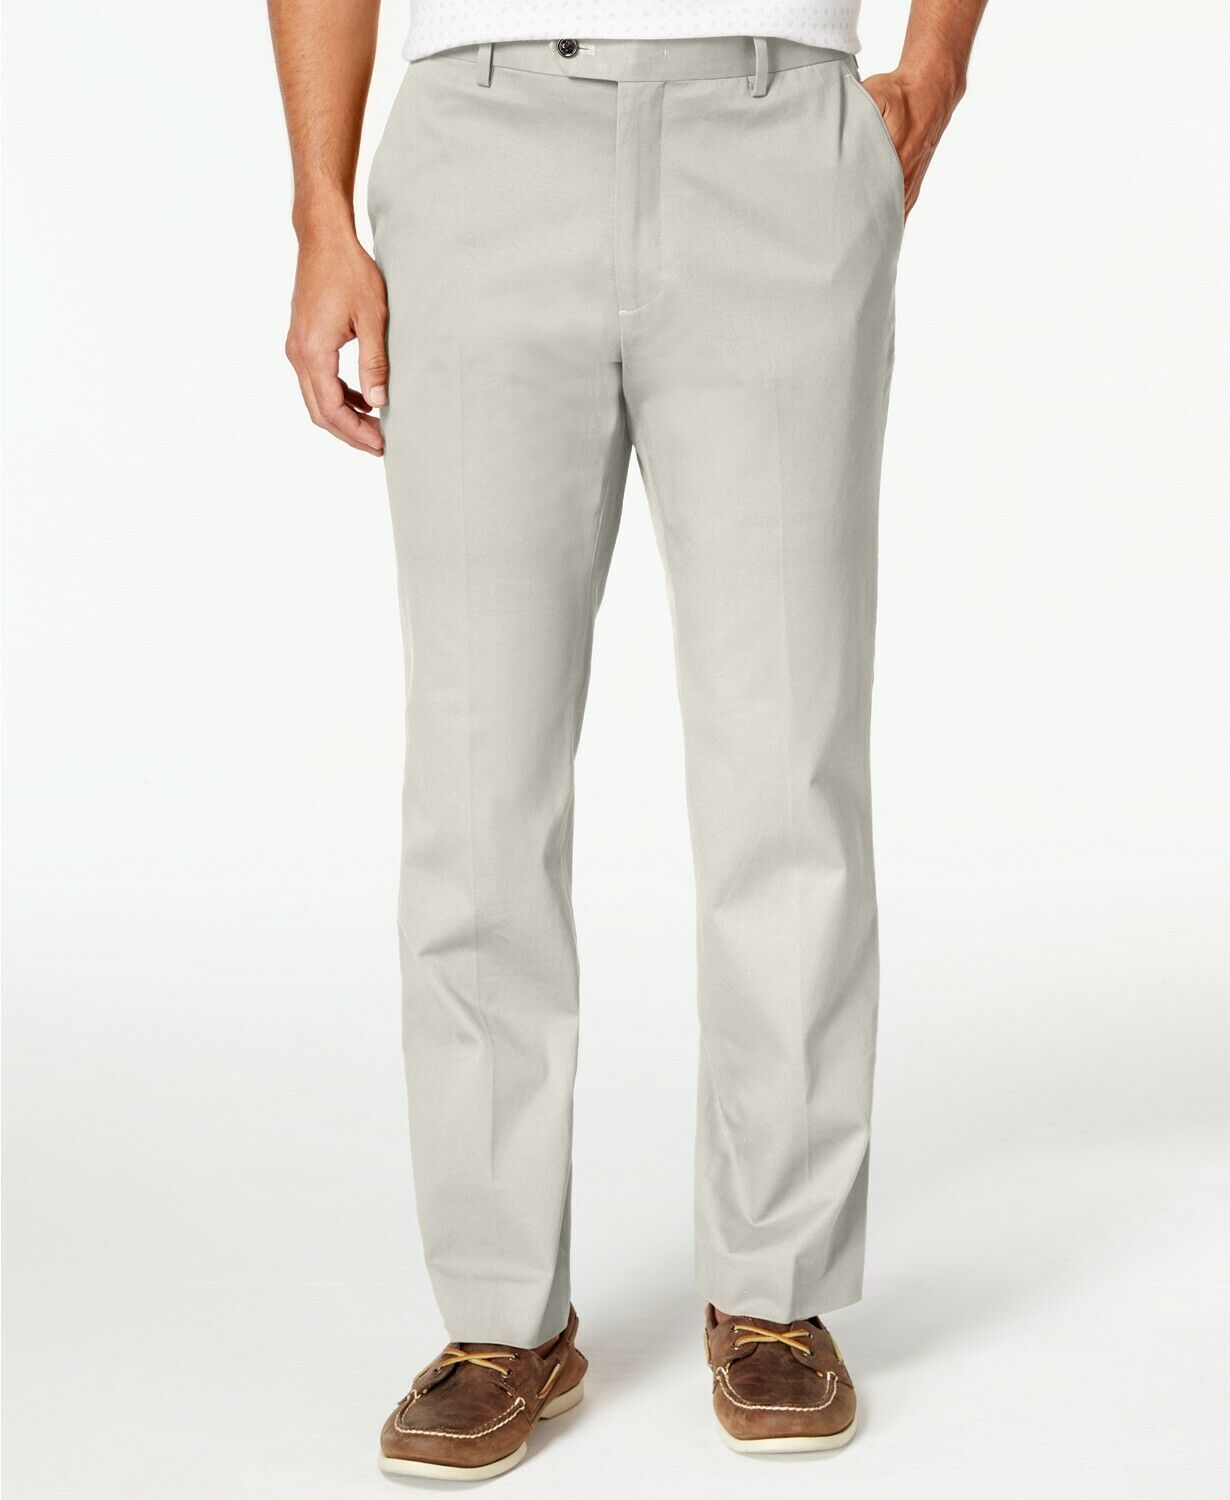 Tasso Elba Men's Regular-Fit Stretch Pants, White Fog, 38W x 30L